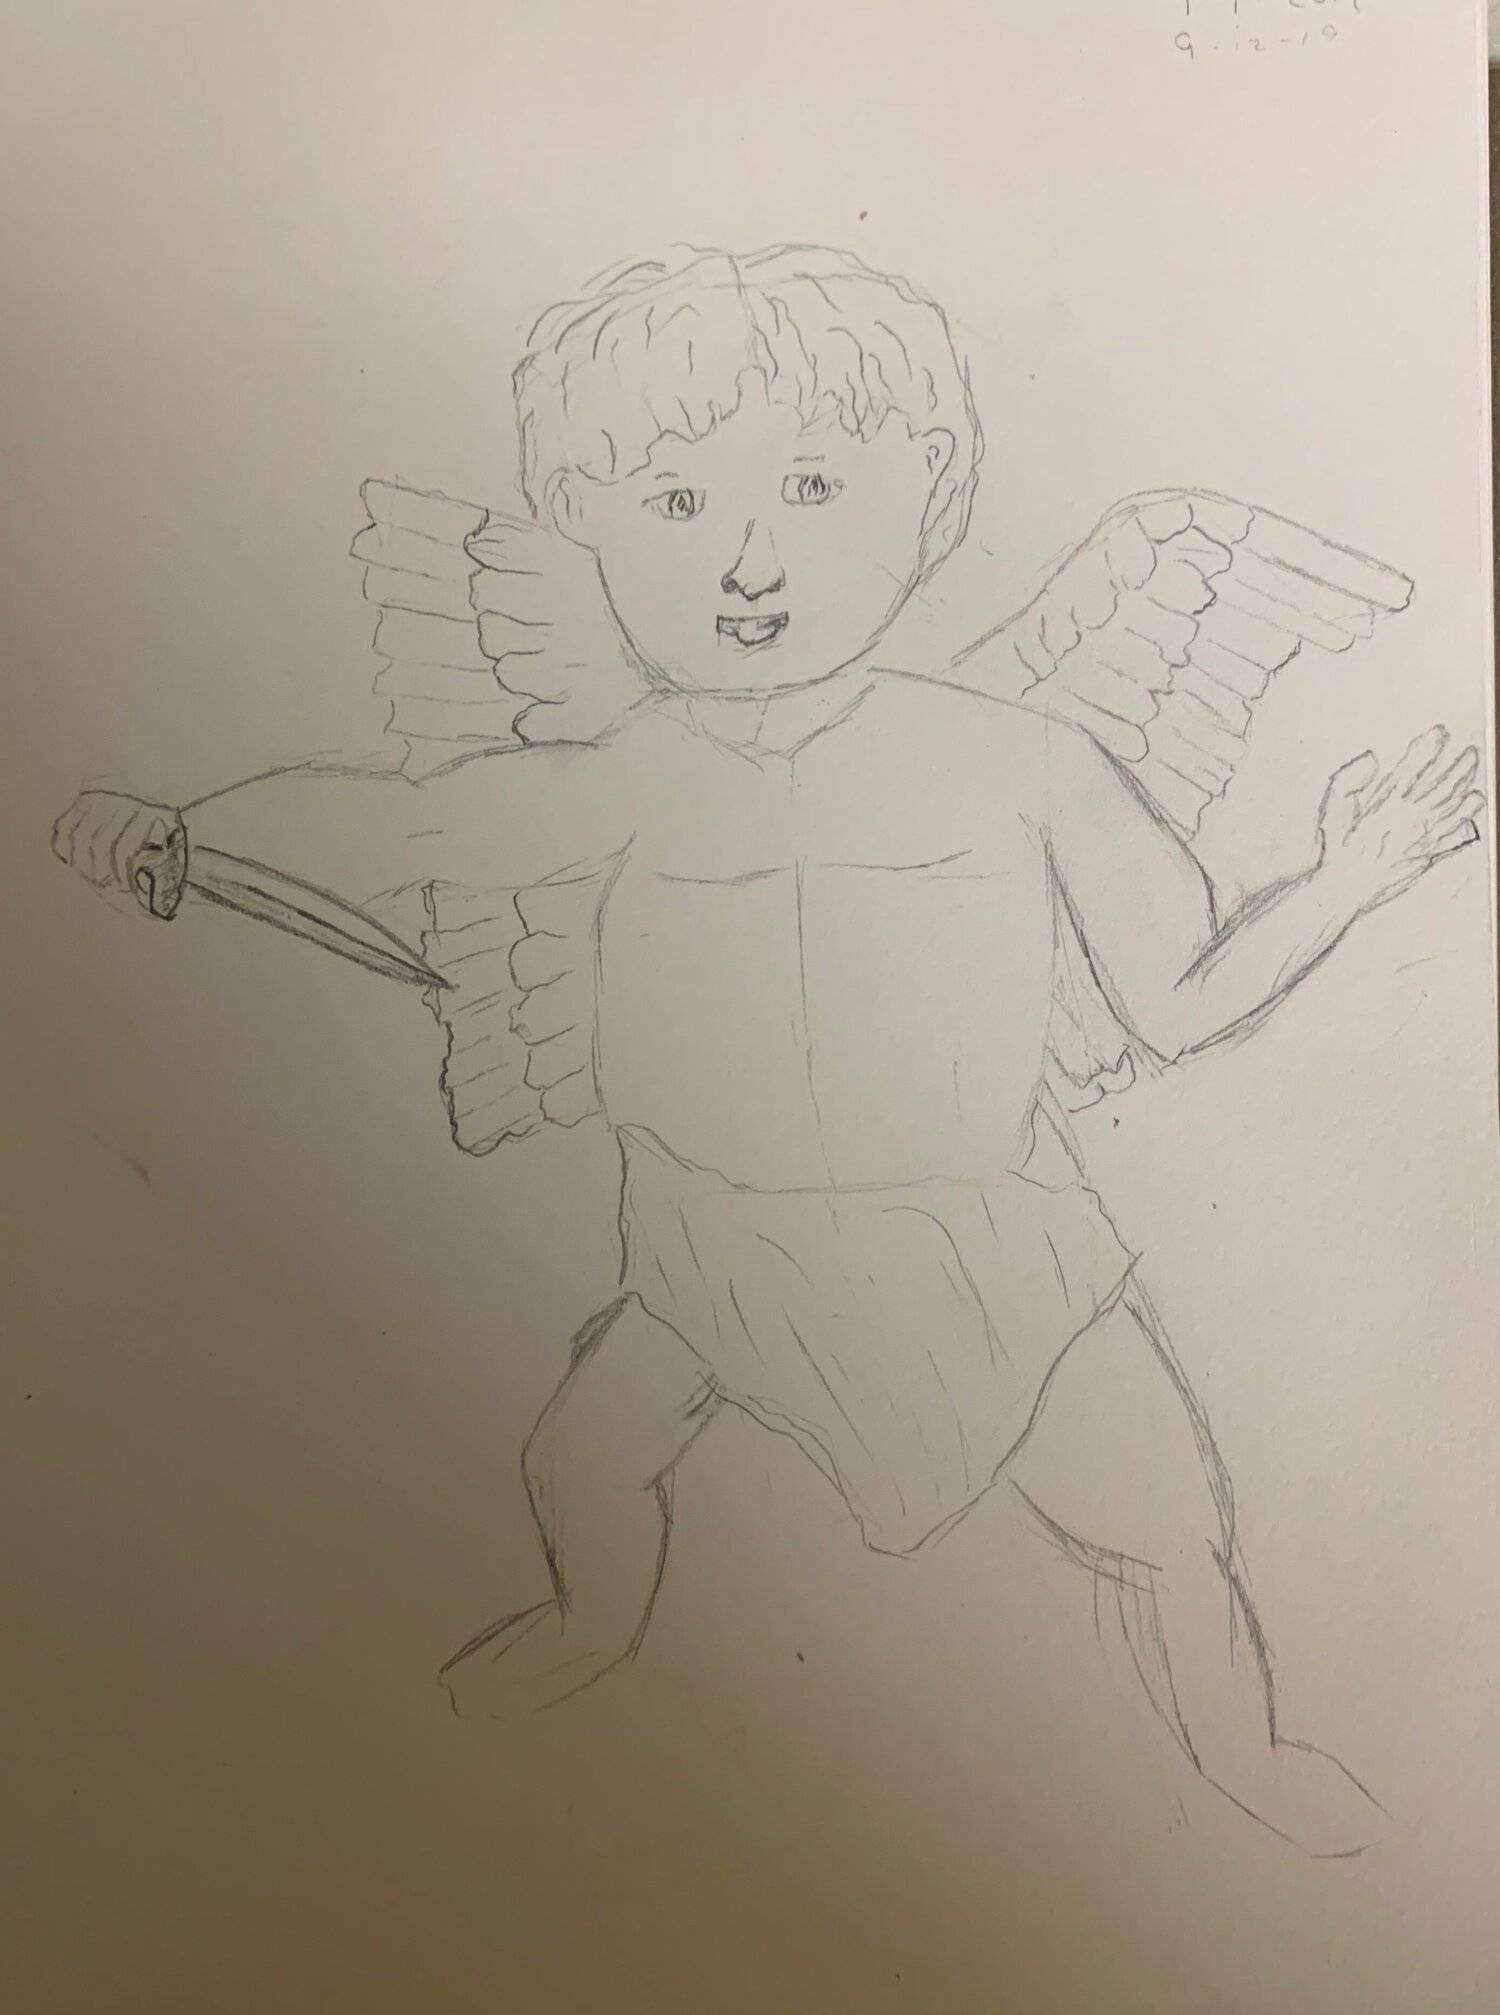 Cupid, ready to shove that knife in your back.